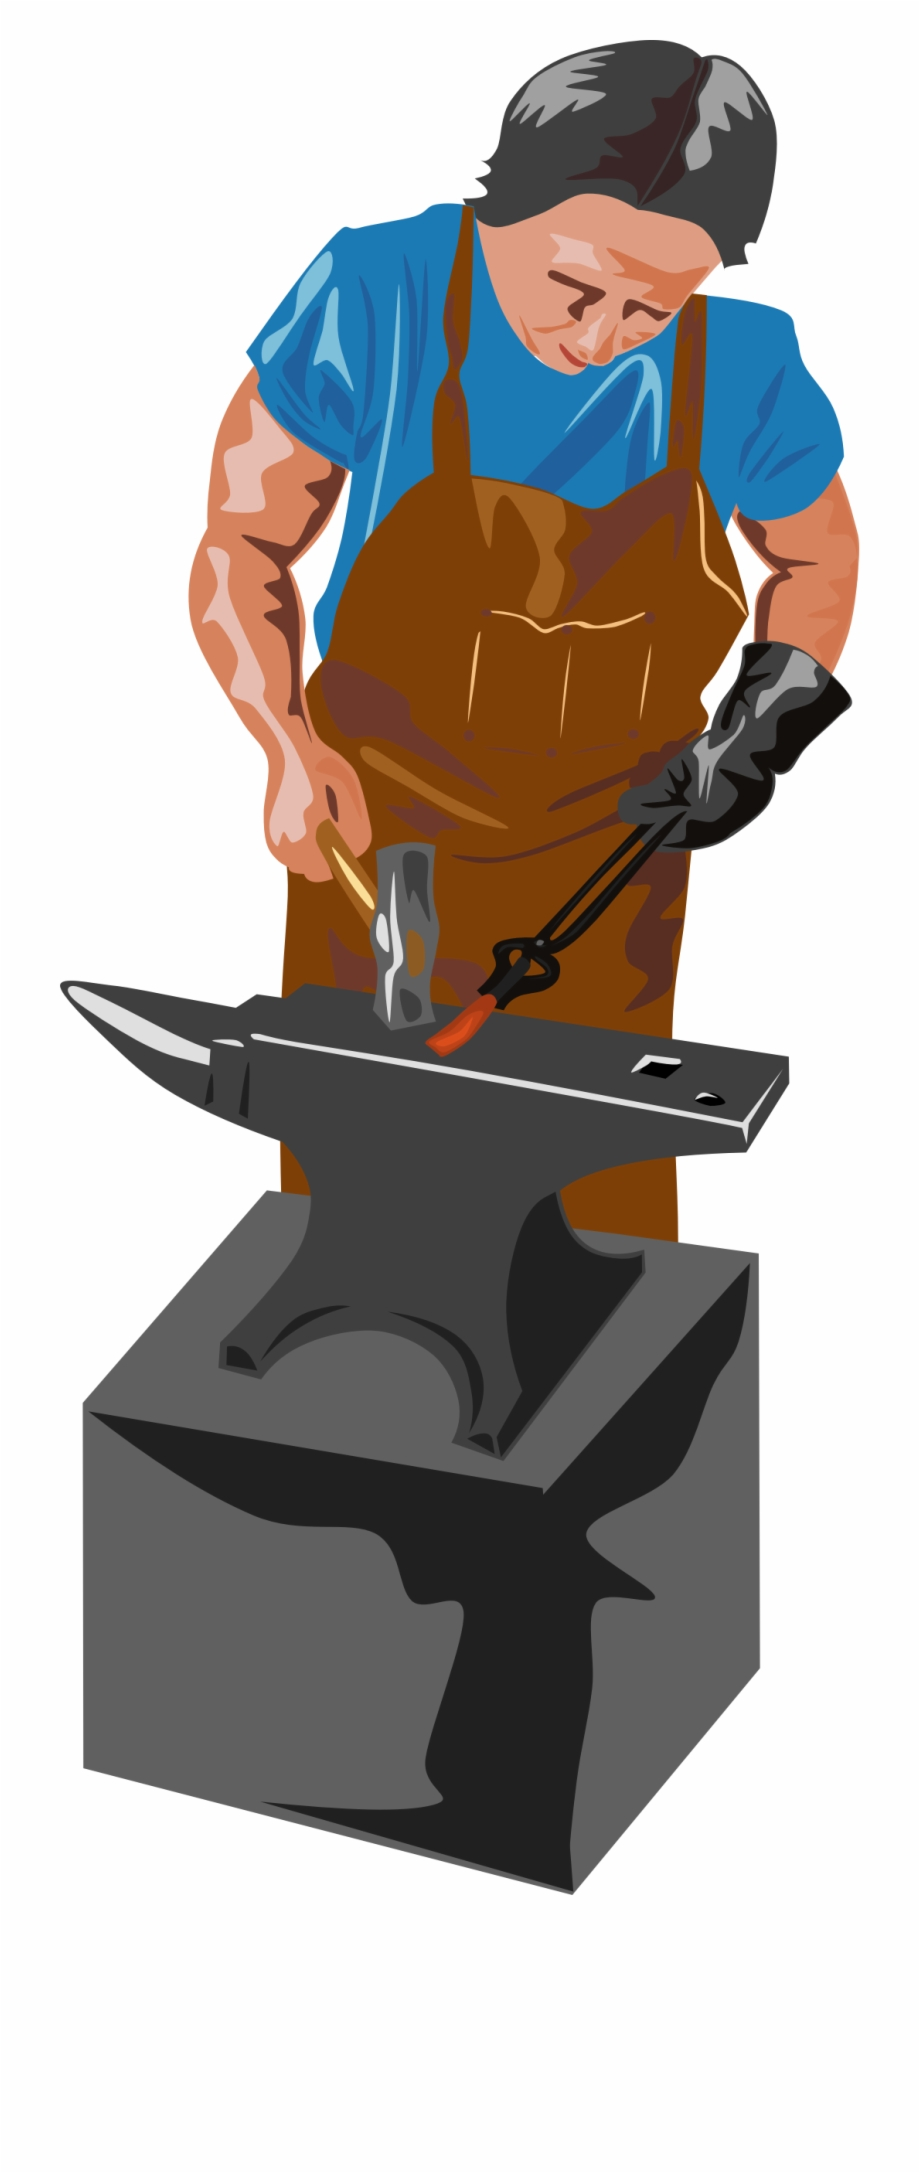 Anvil clipart blacksmith tongs. This free icons png